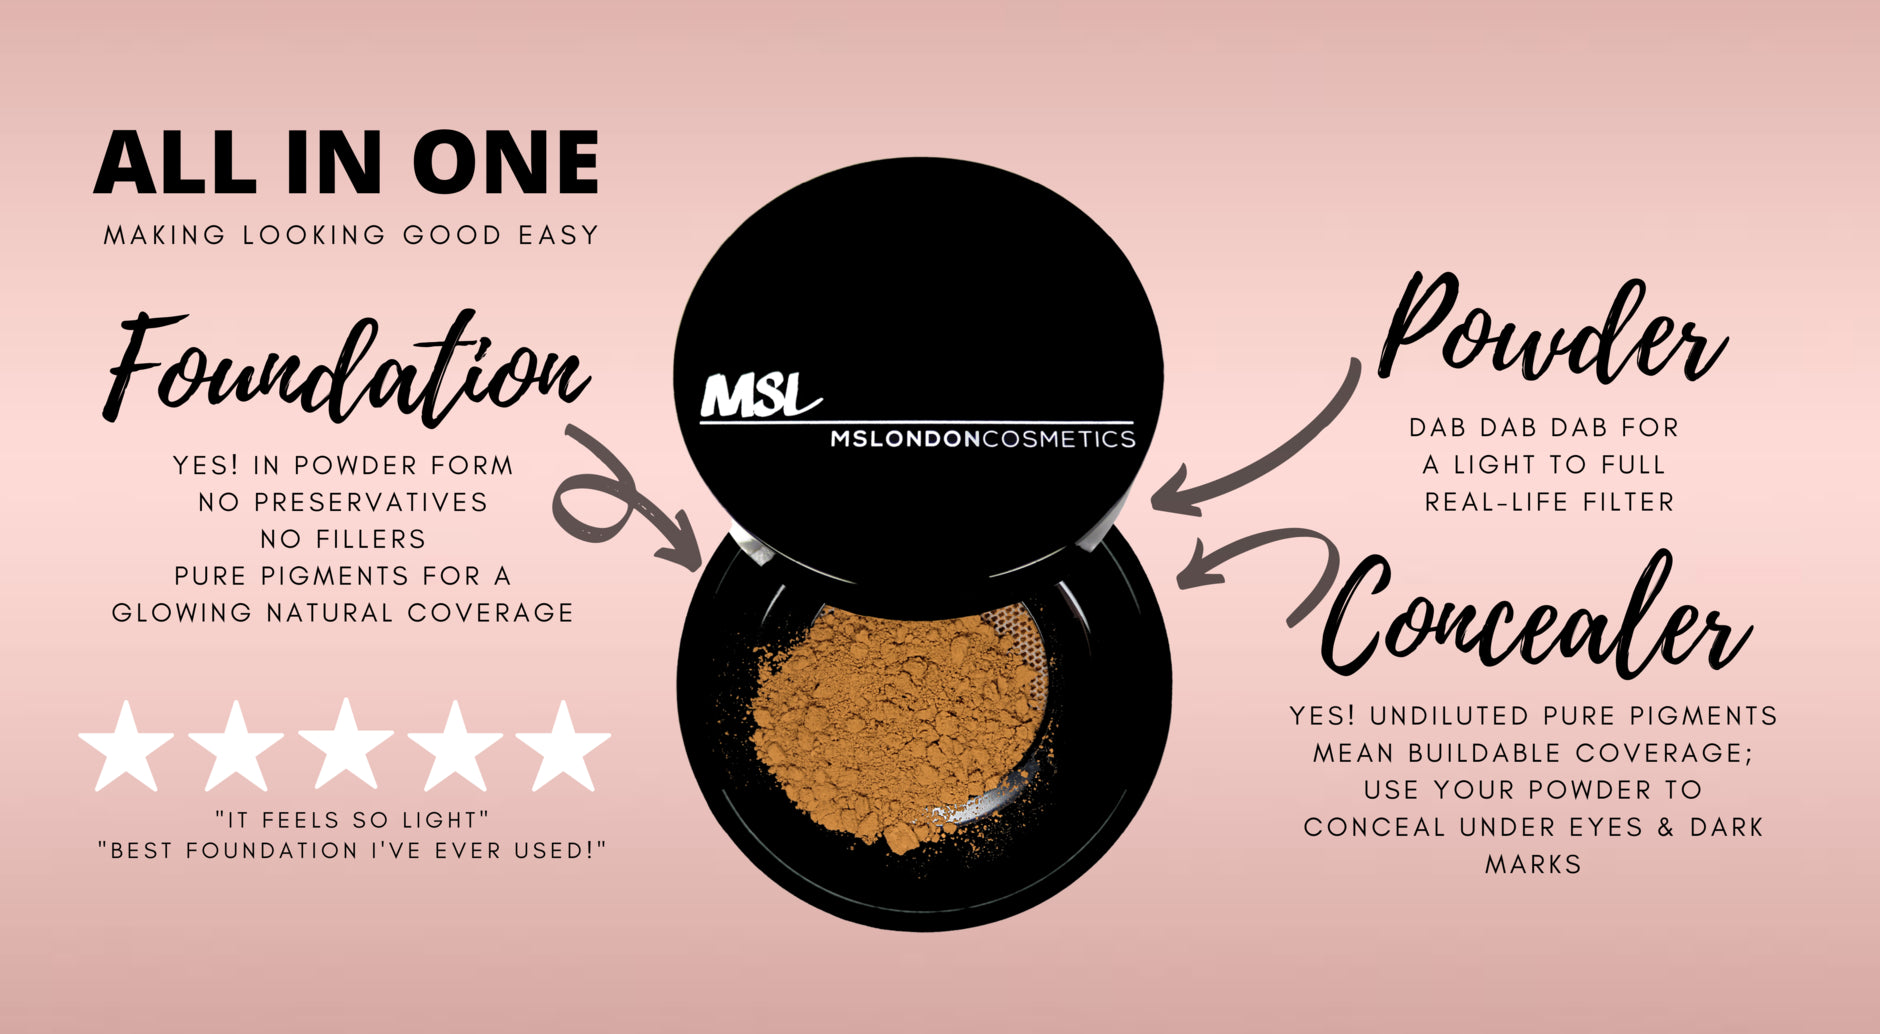 MSL Mineral Makeup - click here to get more information